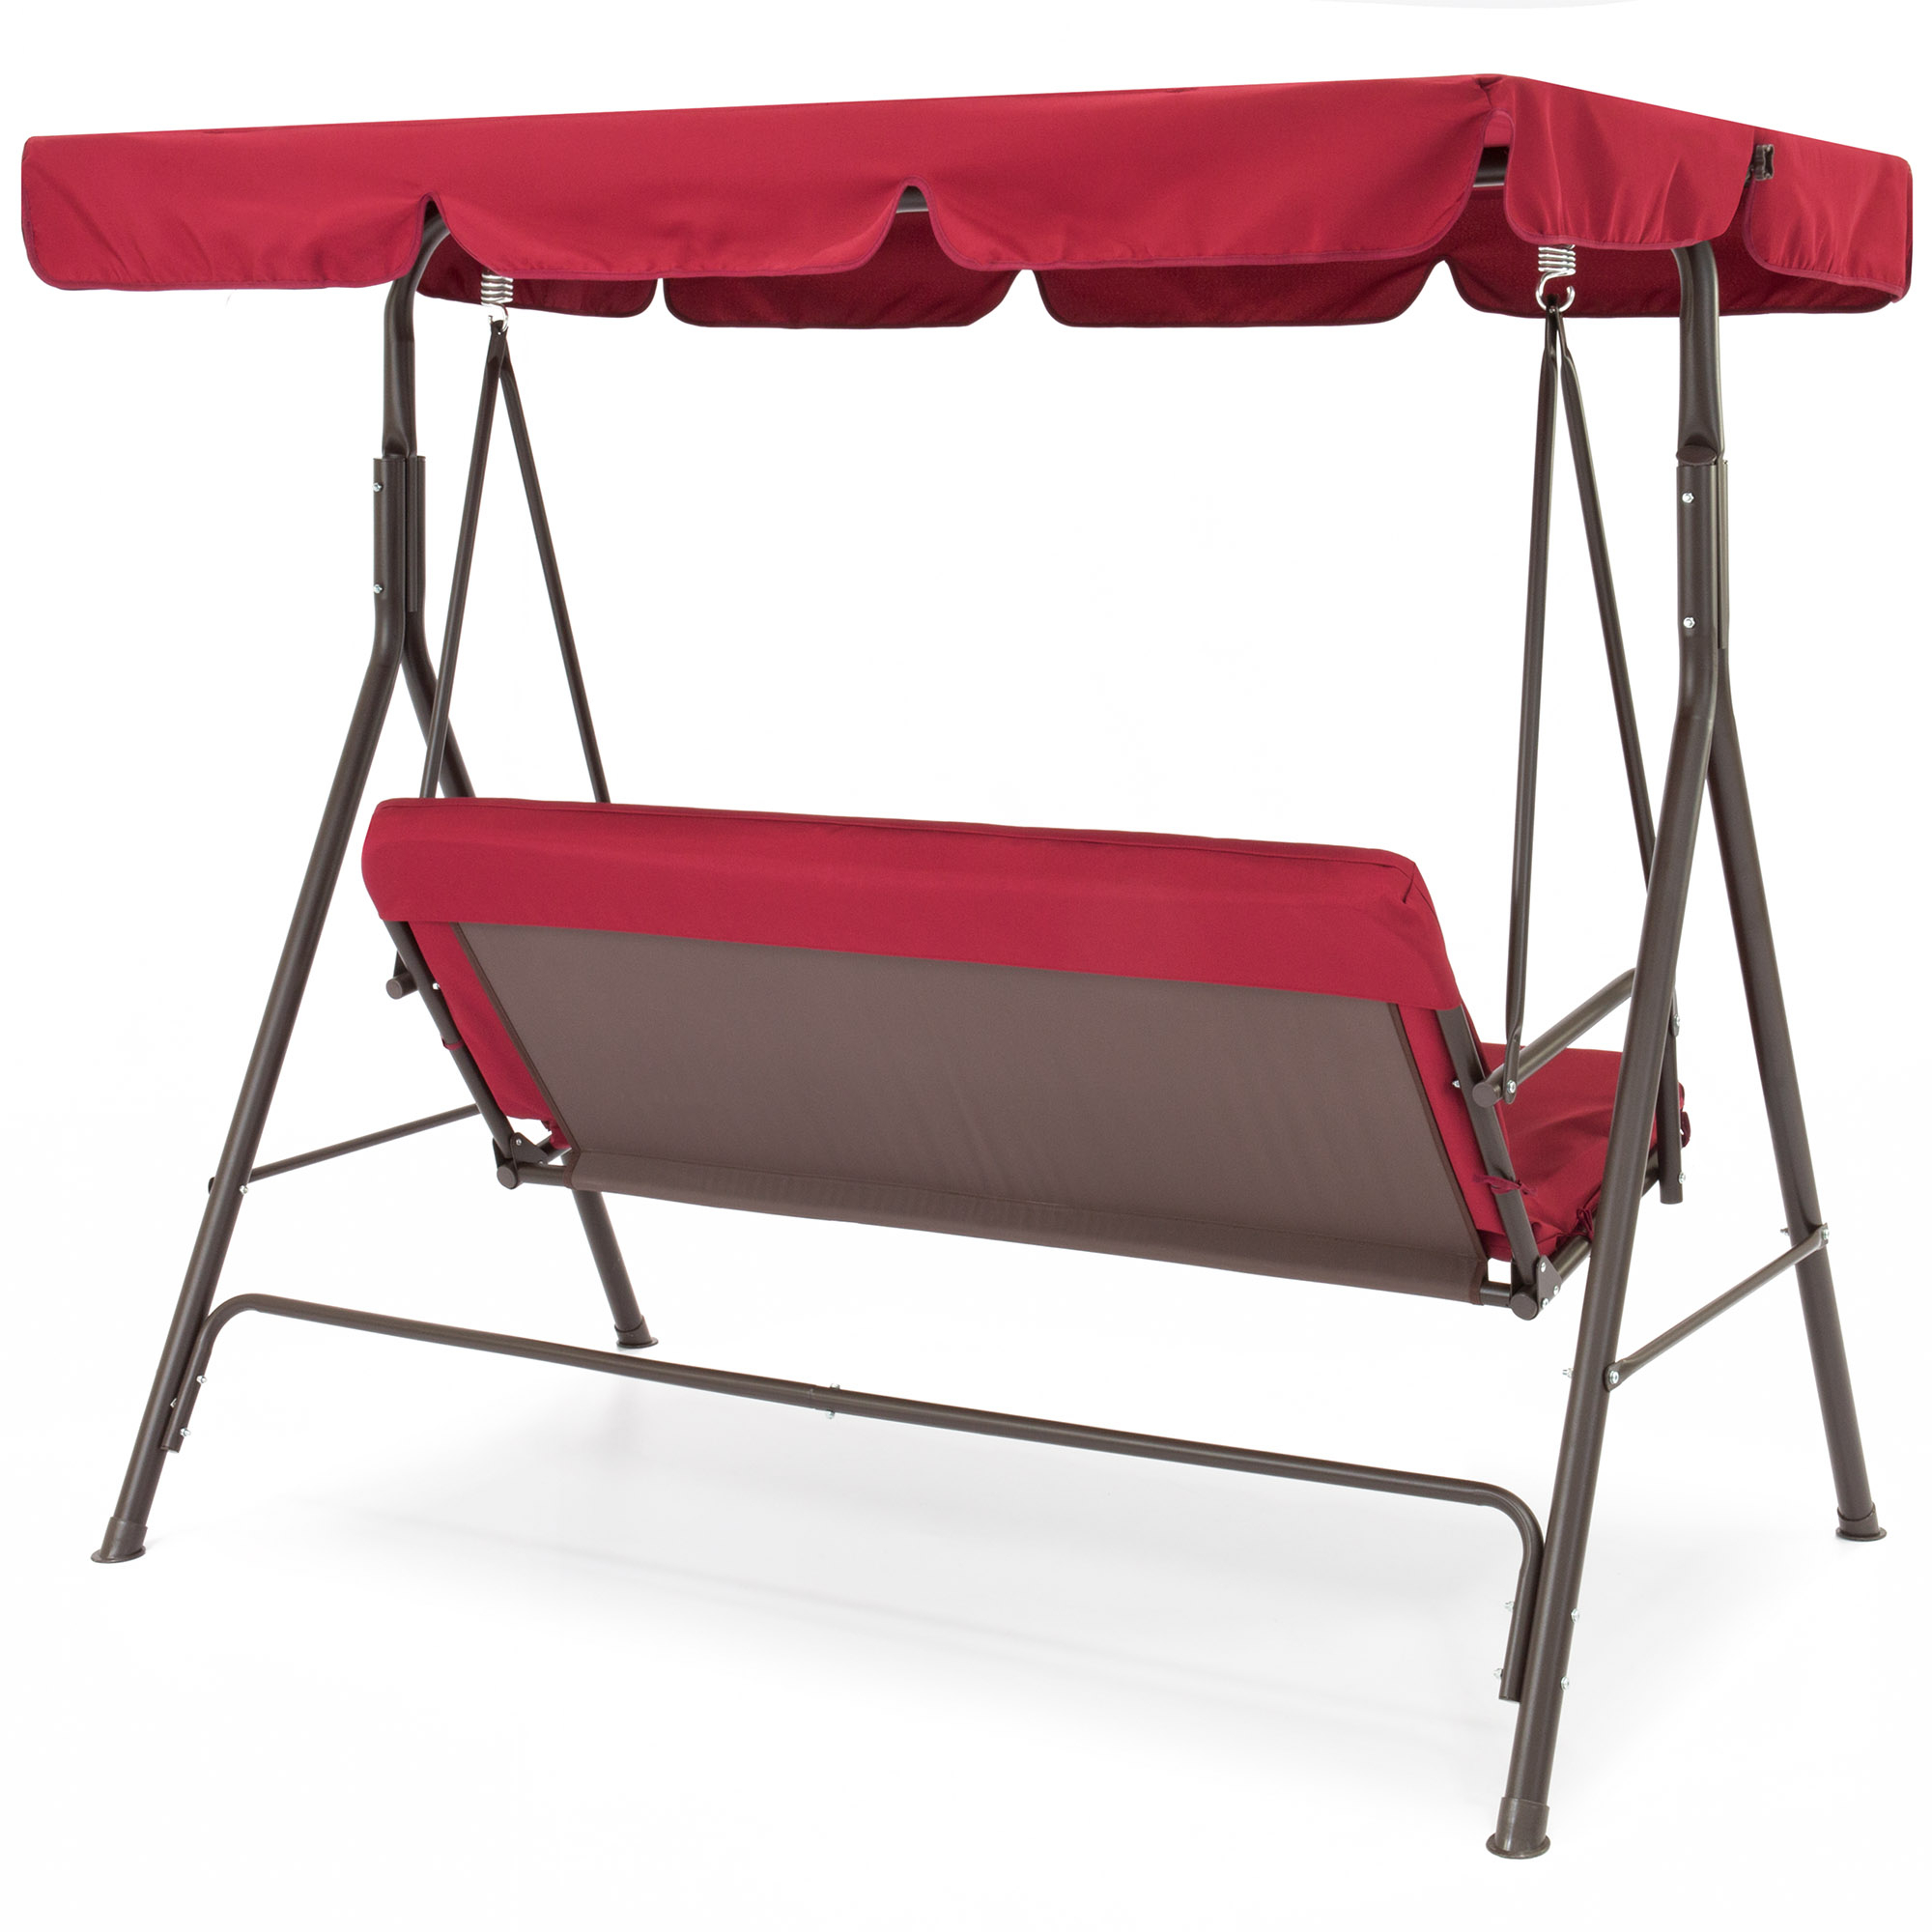 Garden & Patio Furniture Bcp 2 Person Outdoor Canopy Swing Within Preferred 2 Person Outdoor Convertible Canopy Swing Gliders With Removable Cushions Beige (View 11 of 30)